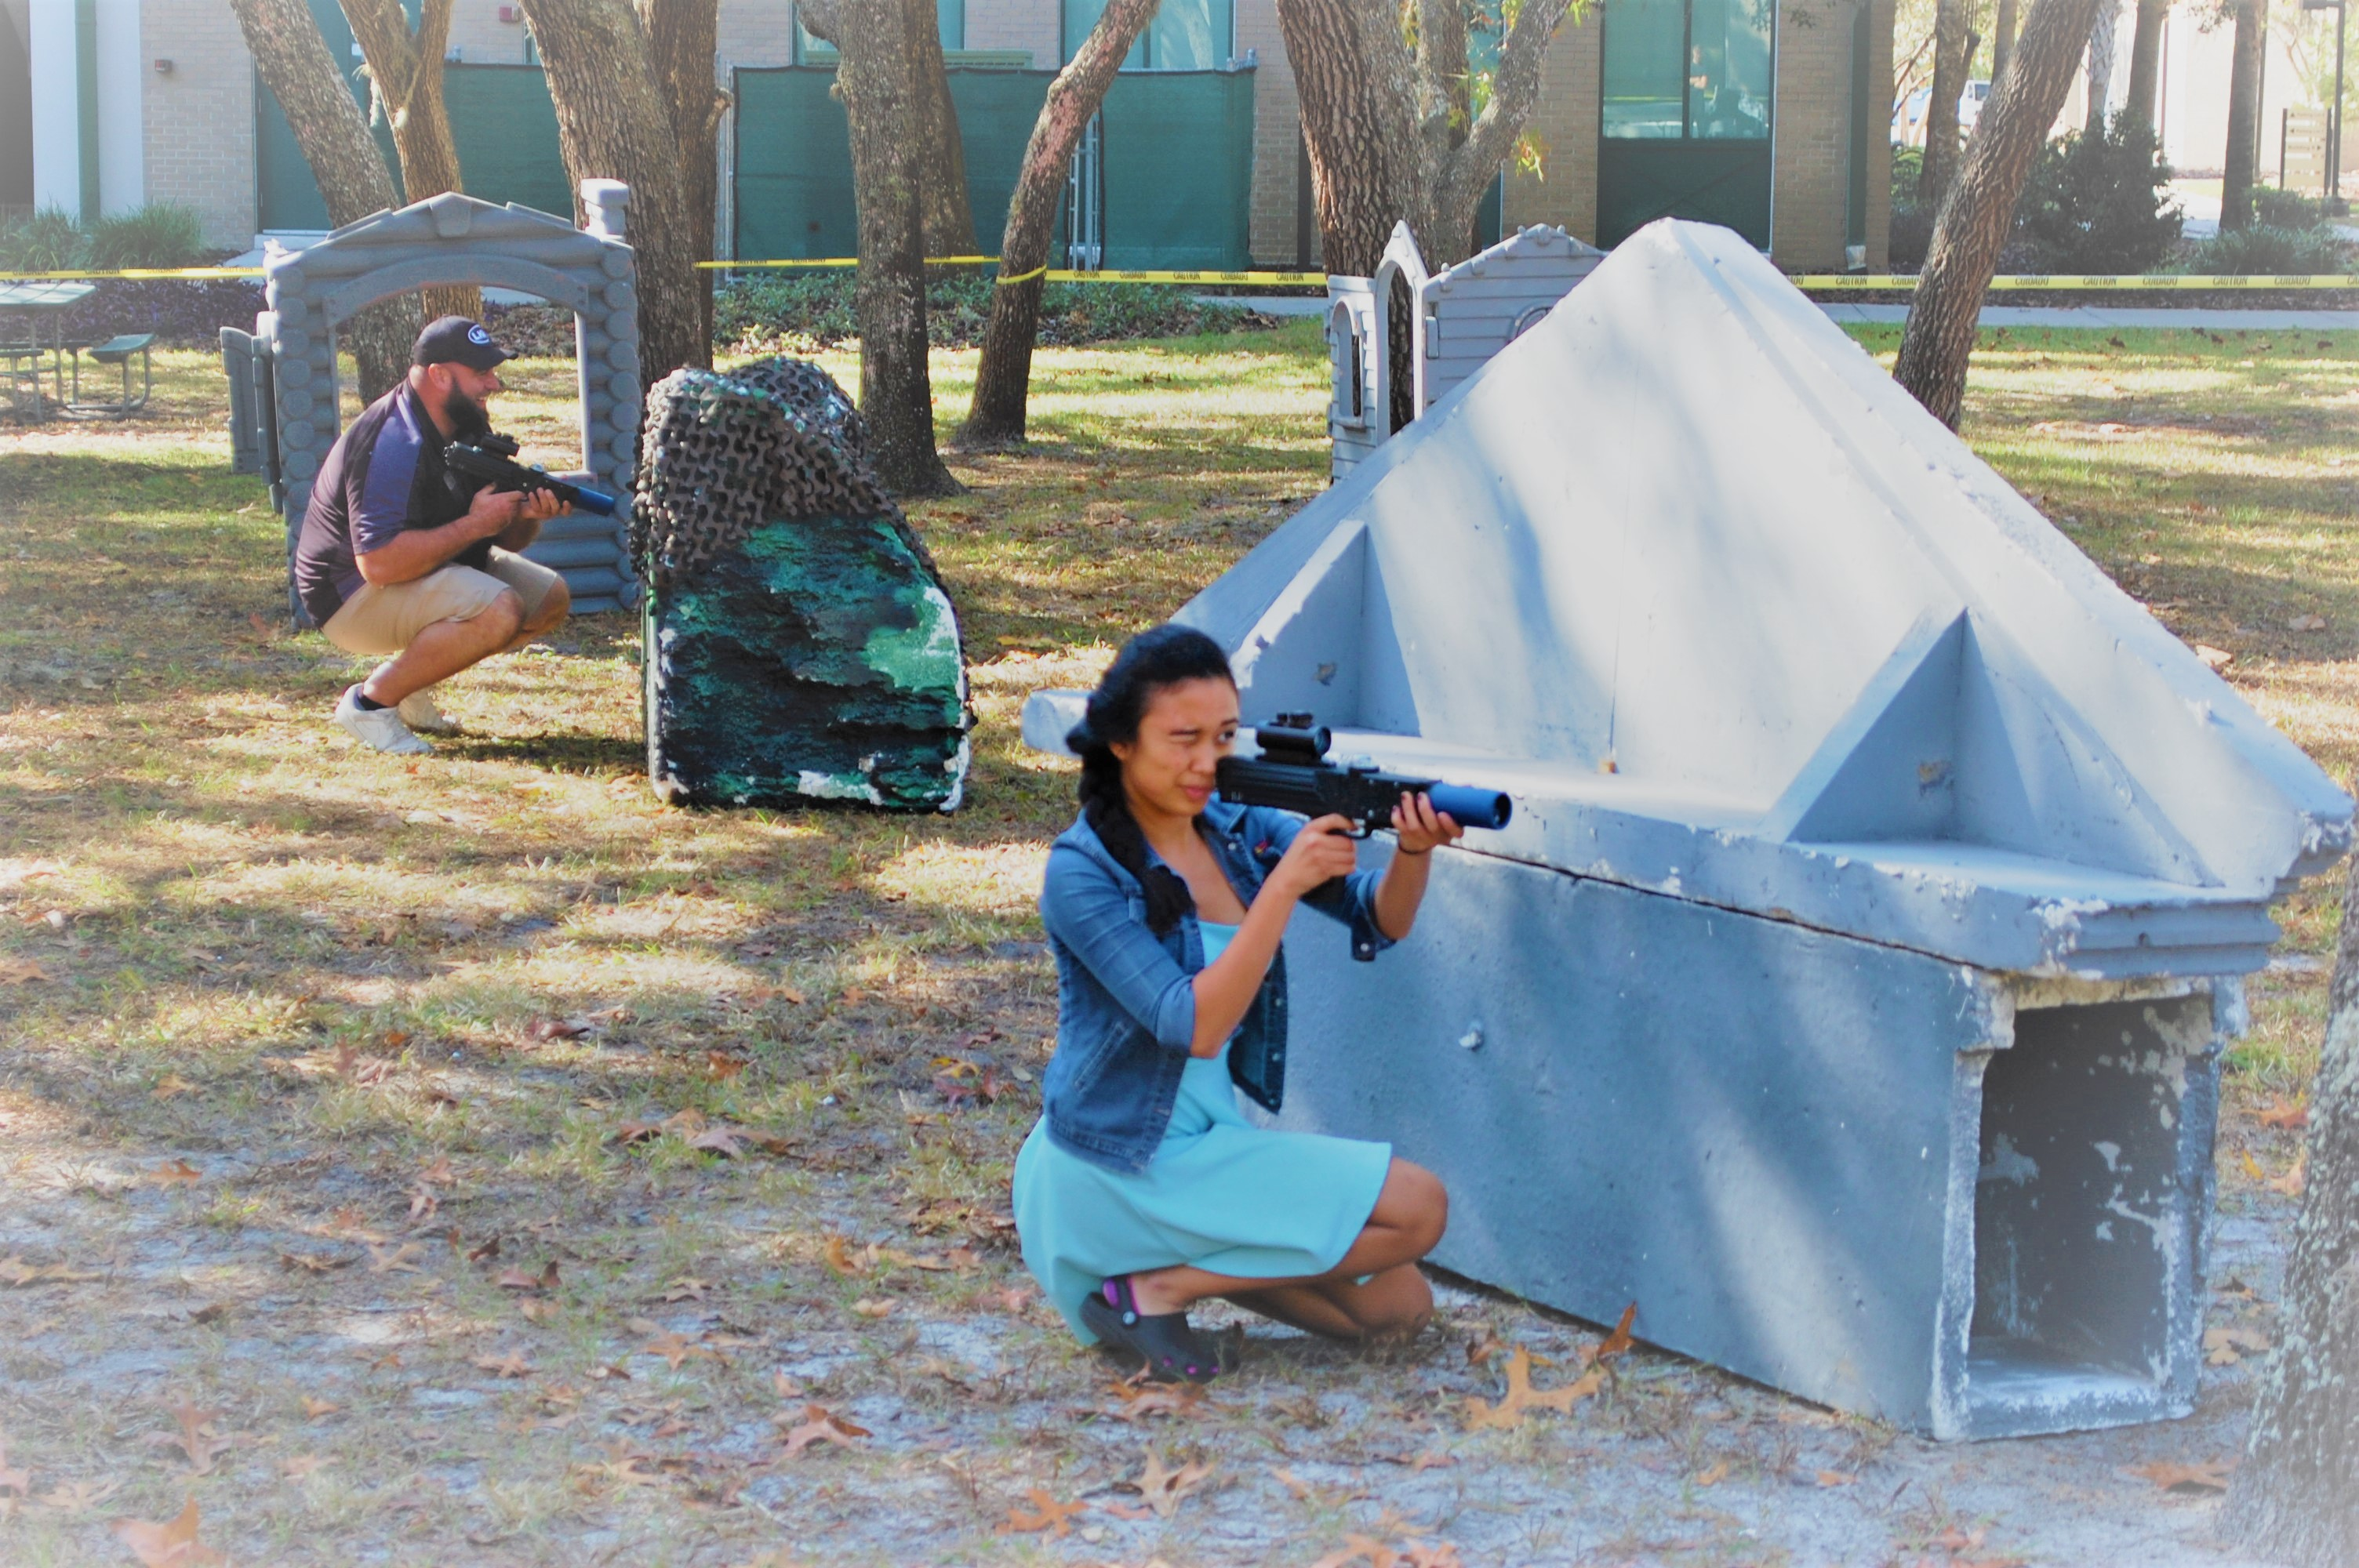 College Events in Florida - Stealth Mobile Laser Tag (62)